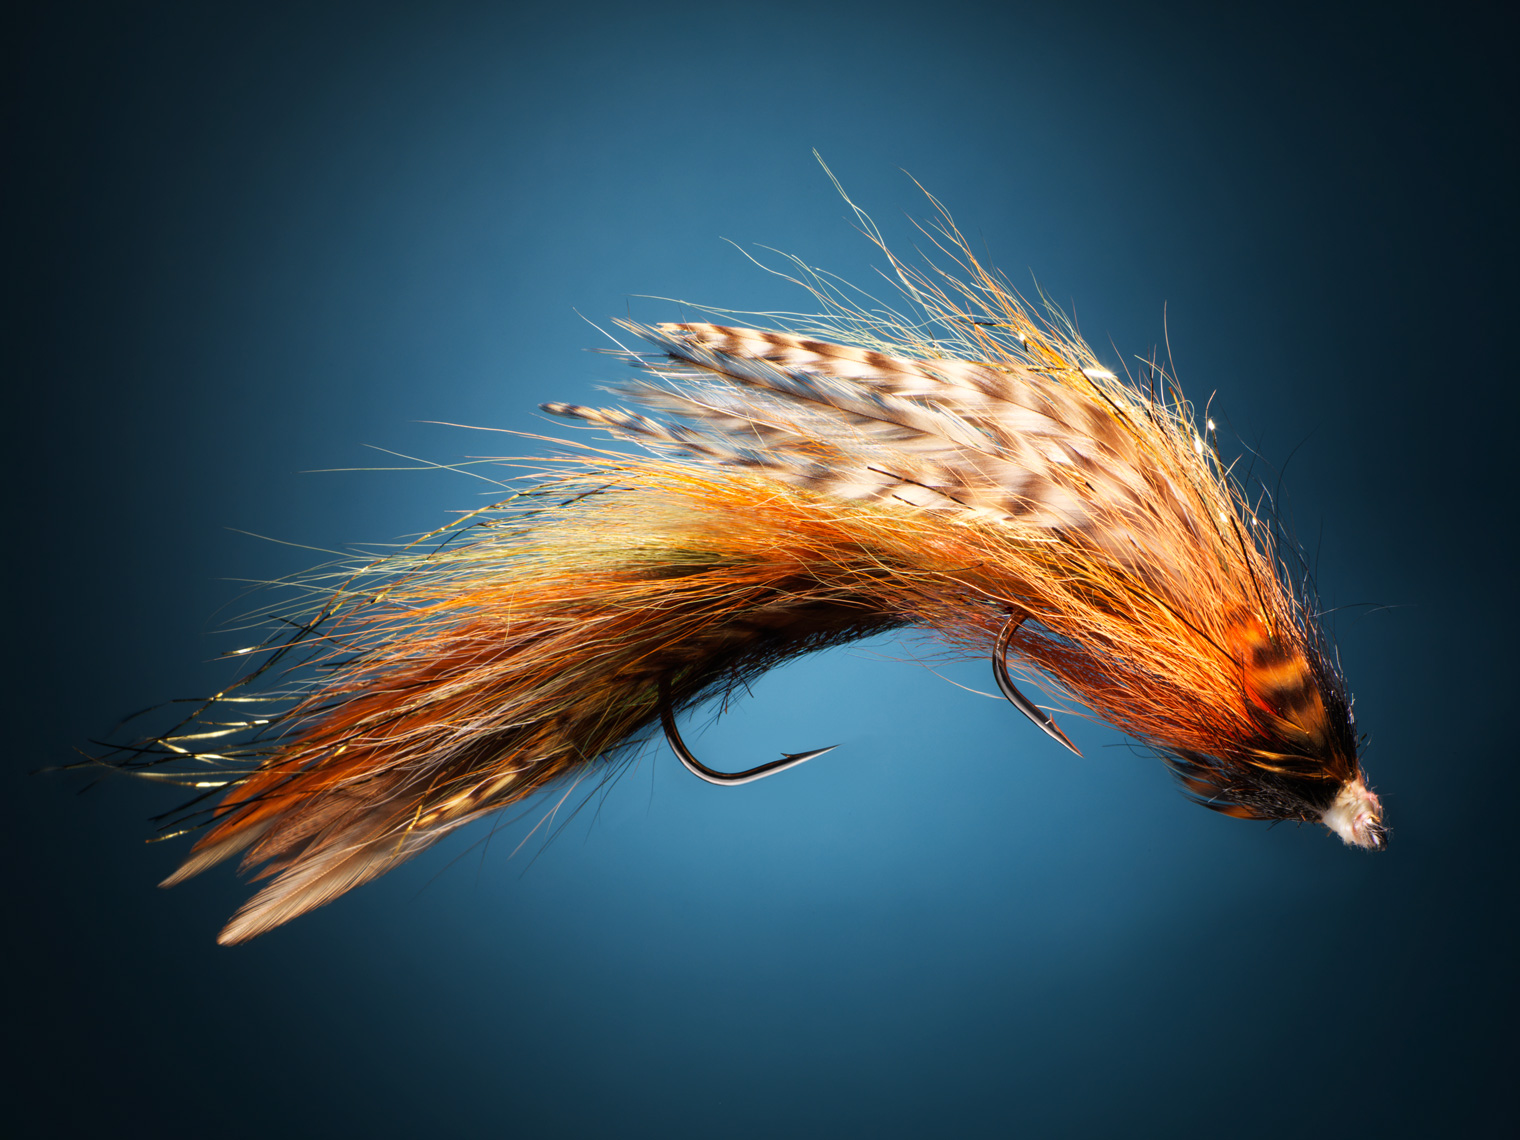 fieldandstream-flyfishing-stilllife-jimgolden